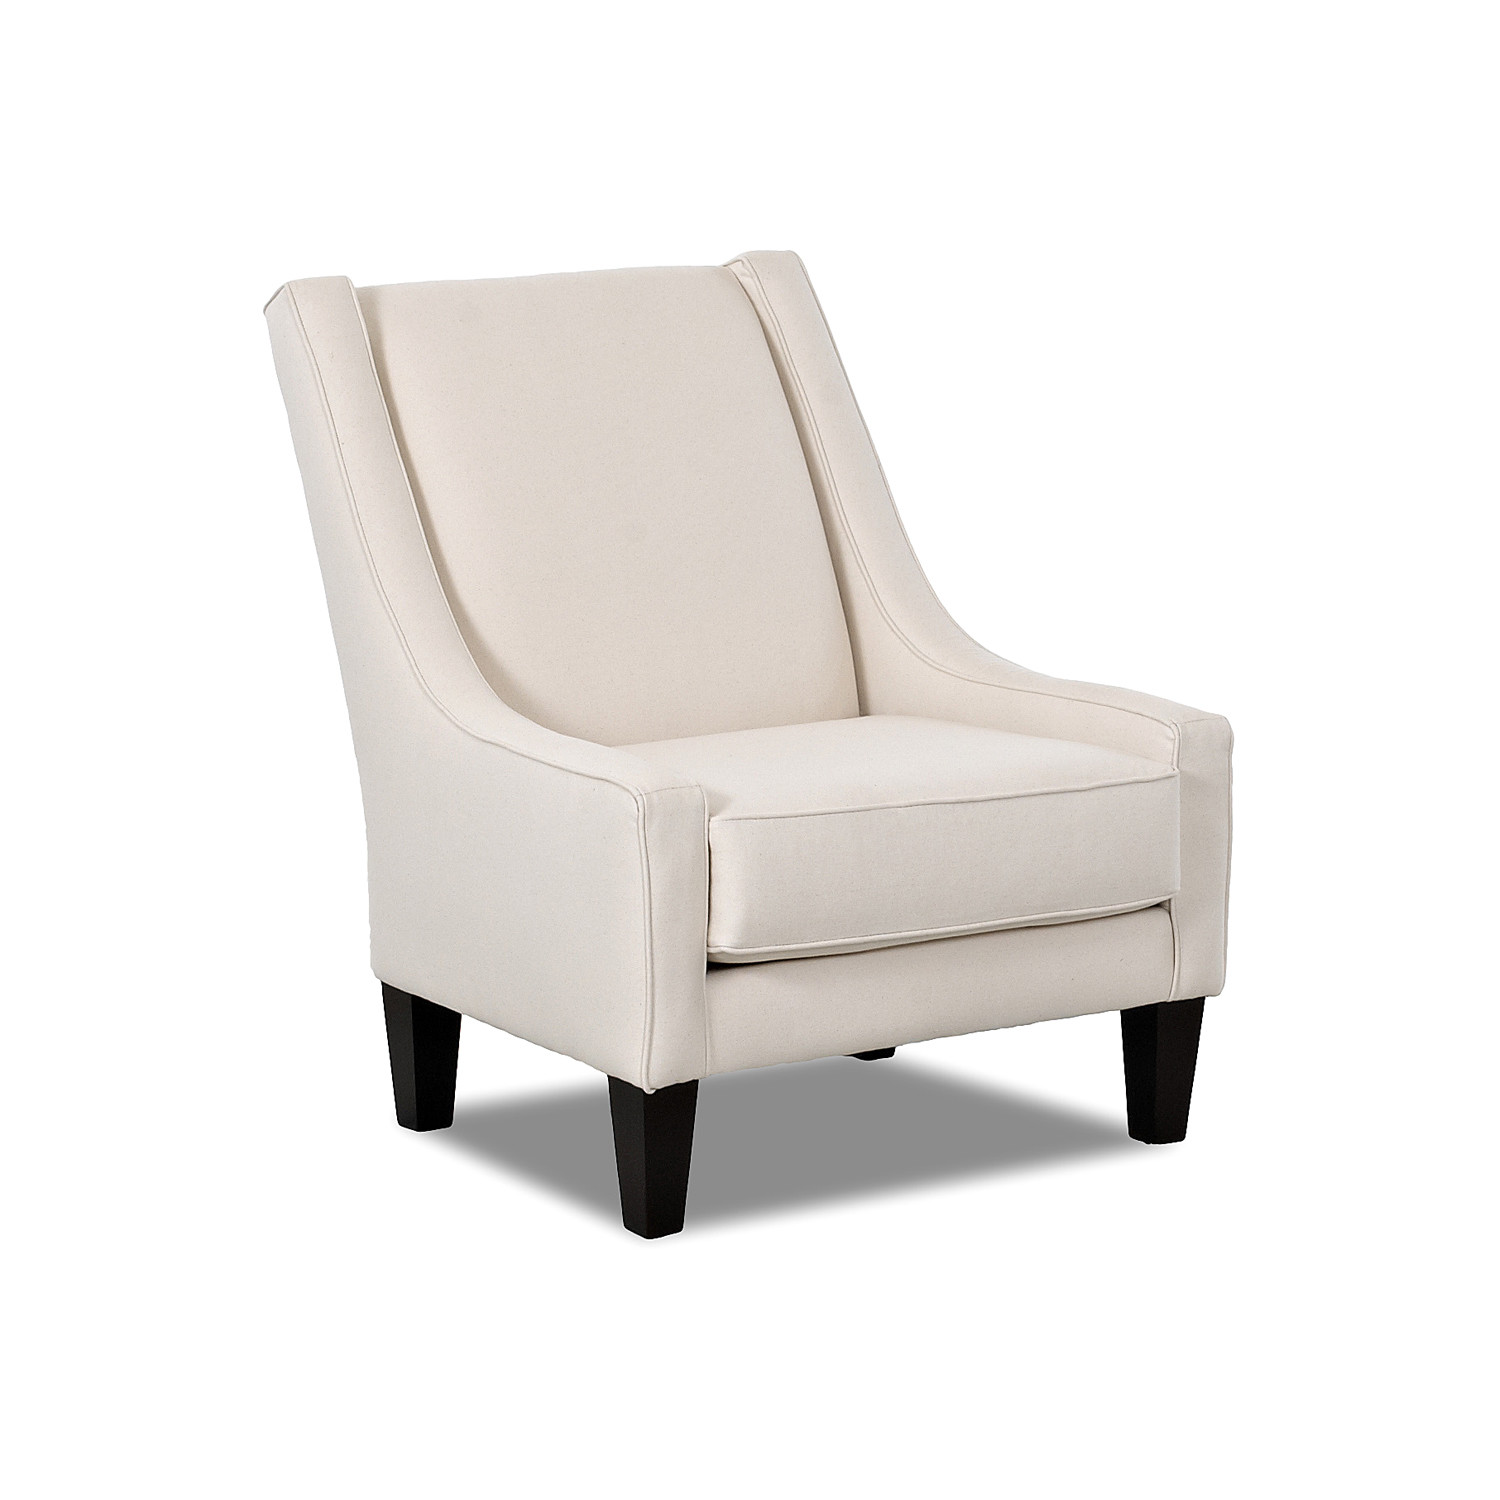 Modern White Upholstered Slipper Chair